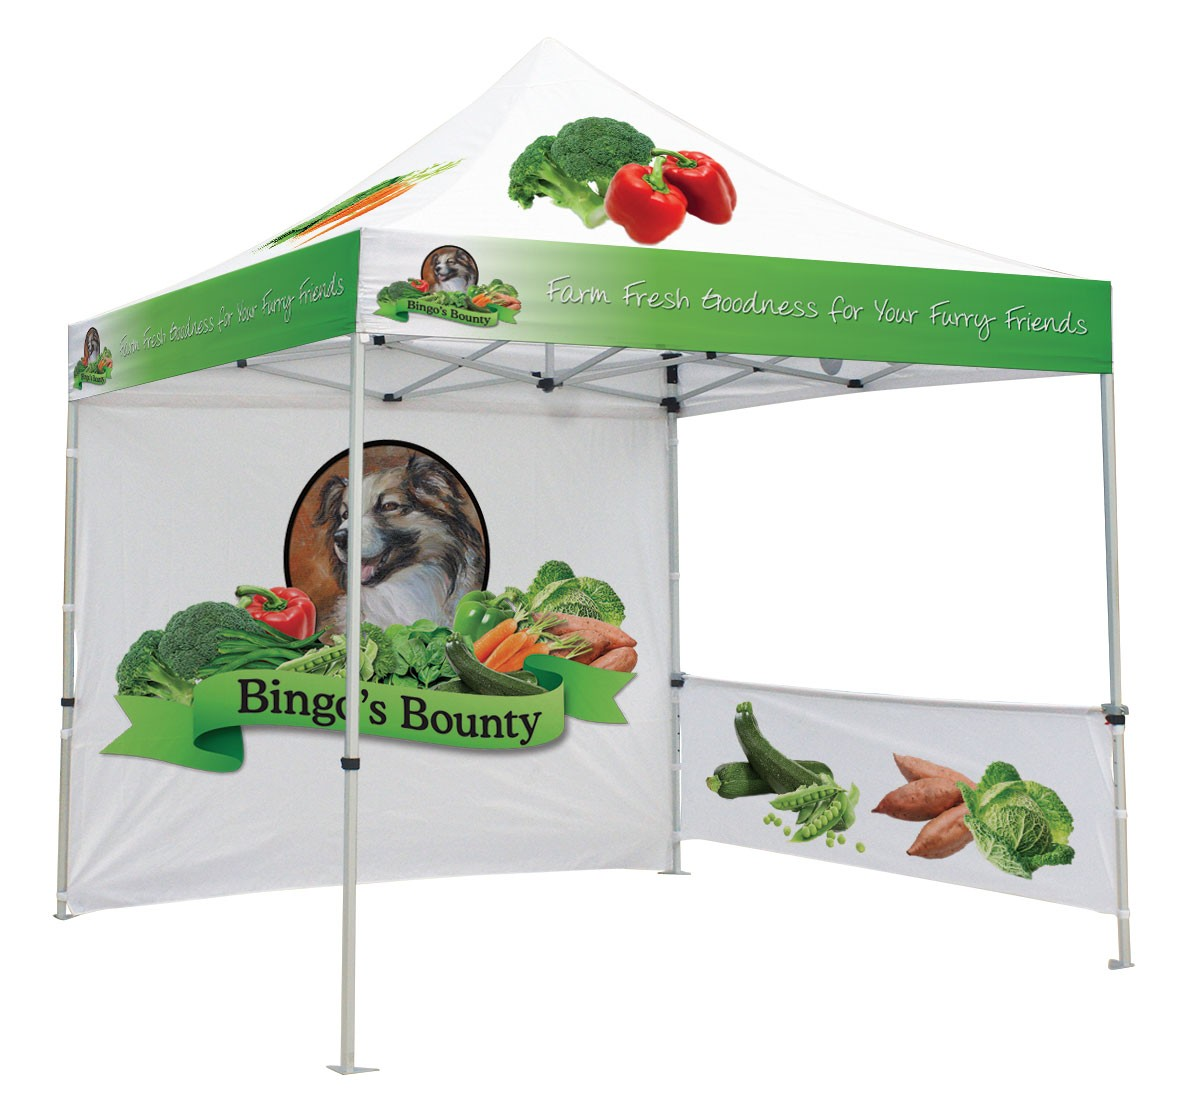 Canopy Tent Kit will full custom printed top and walls